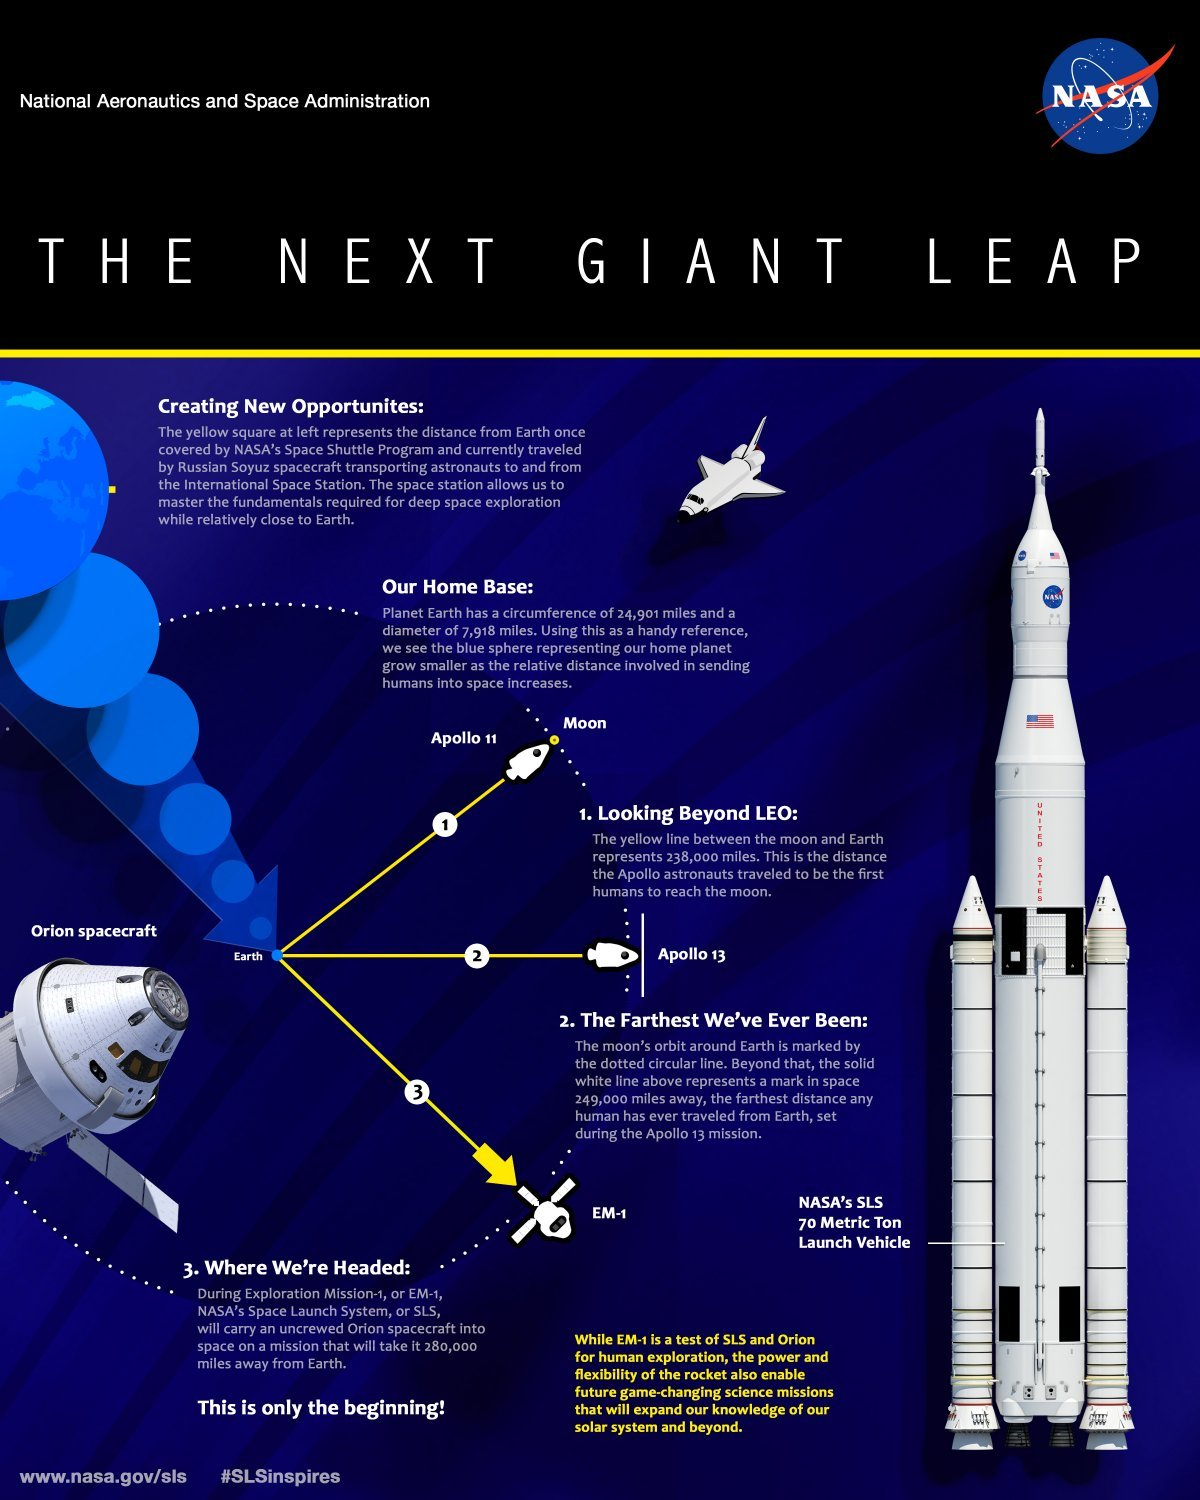 check-out-past-achievements-for-how-far-humans-have-ventured-into-space-and-where-the-sls-will-take-us-next